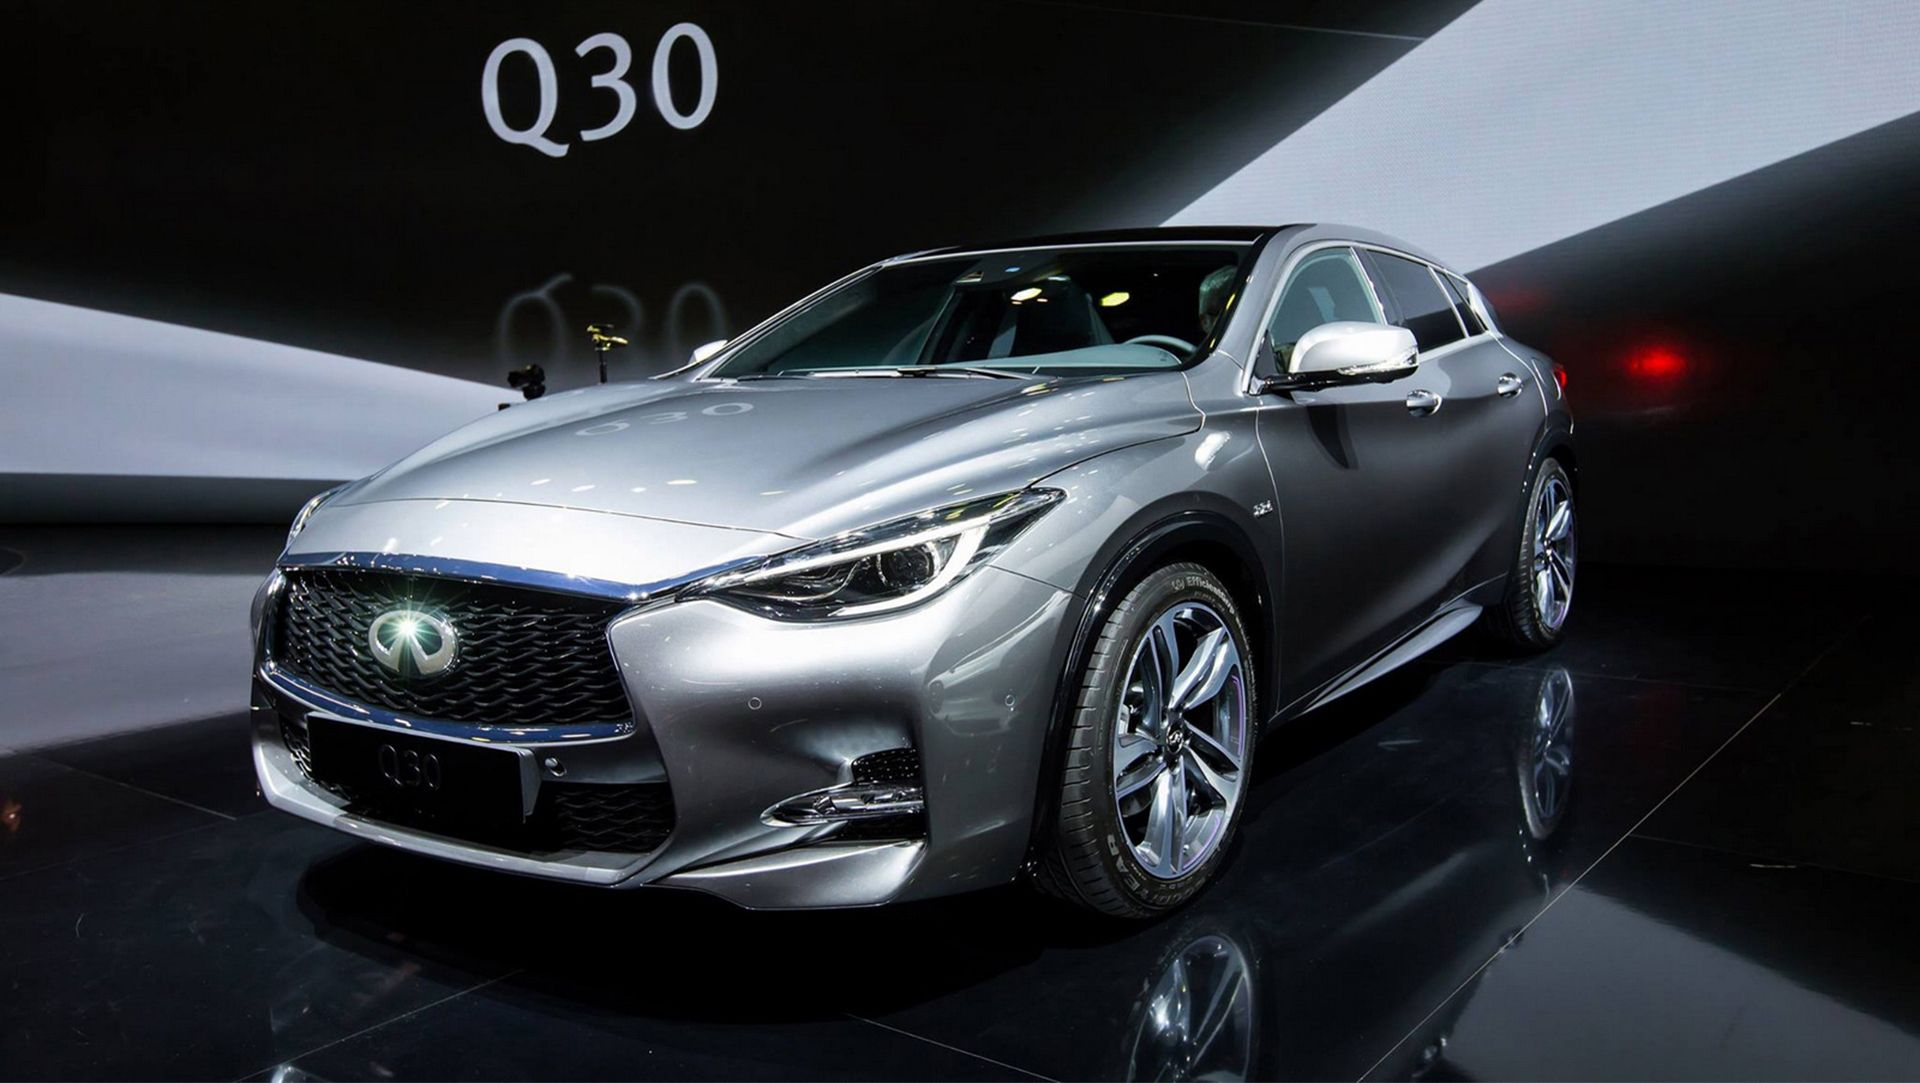 54 The 2020 Infiniti Q30 Images